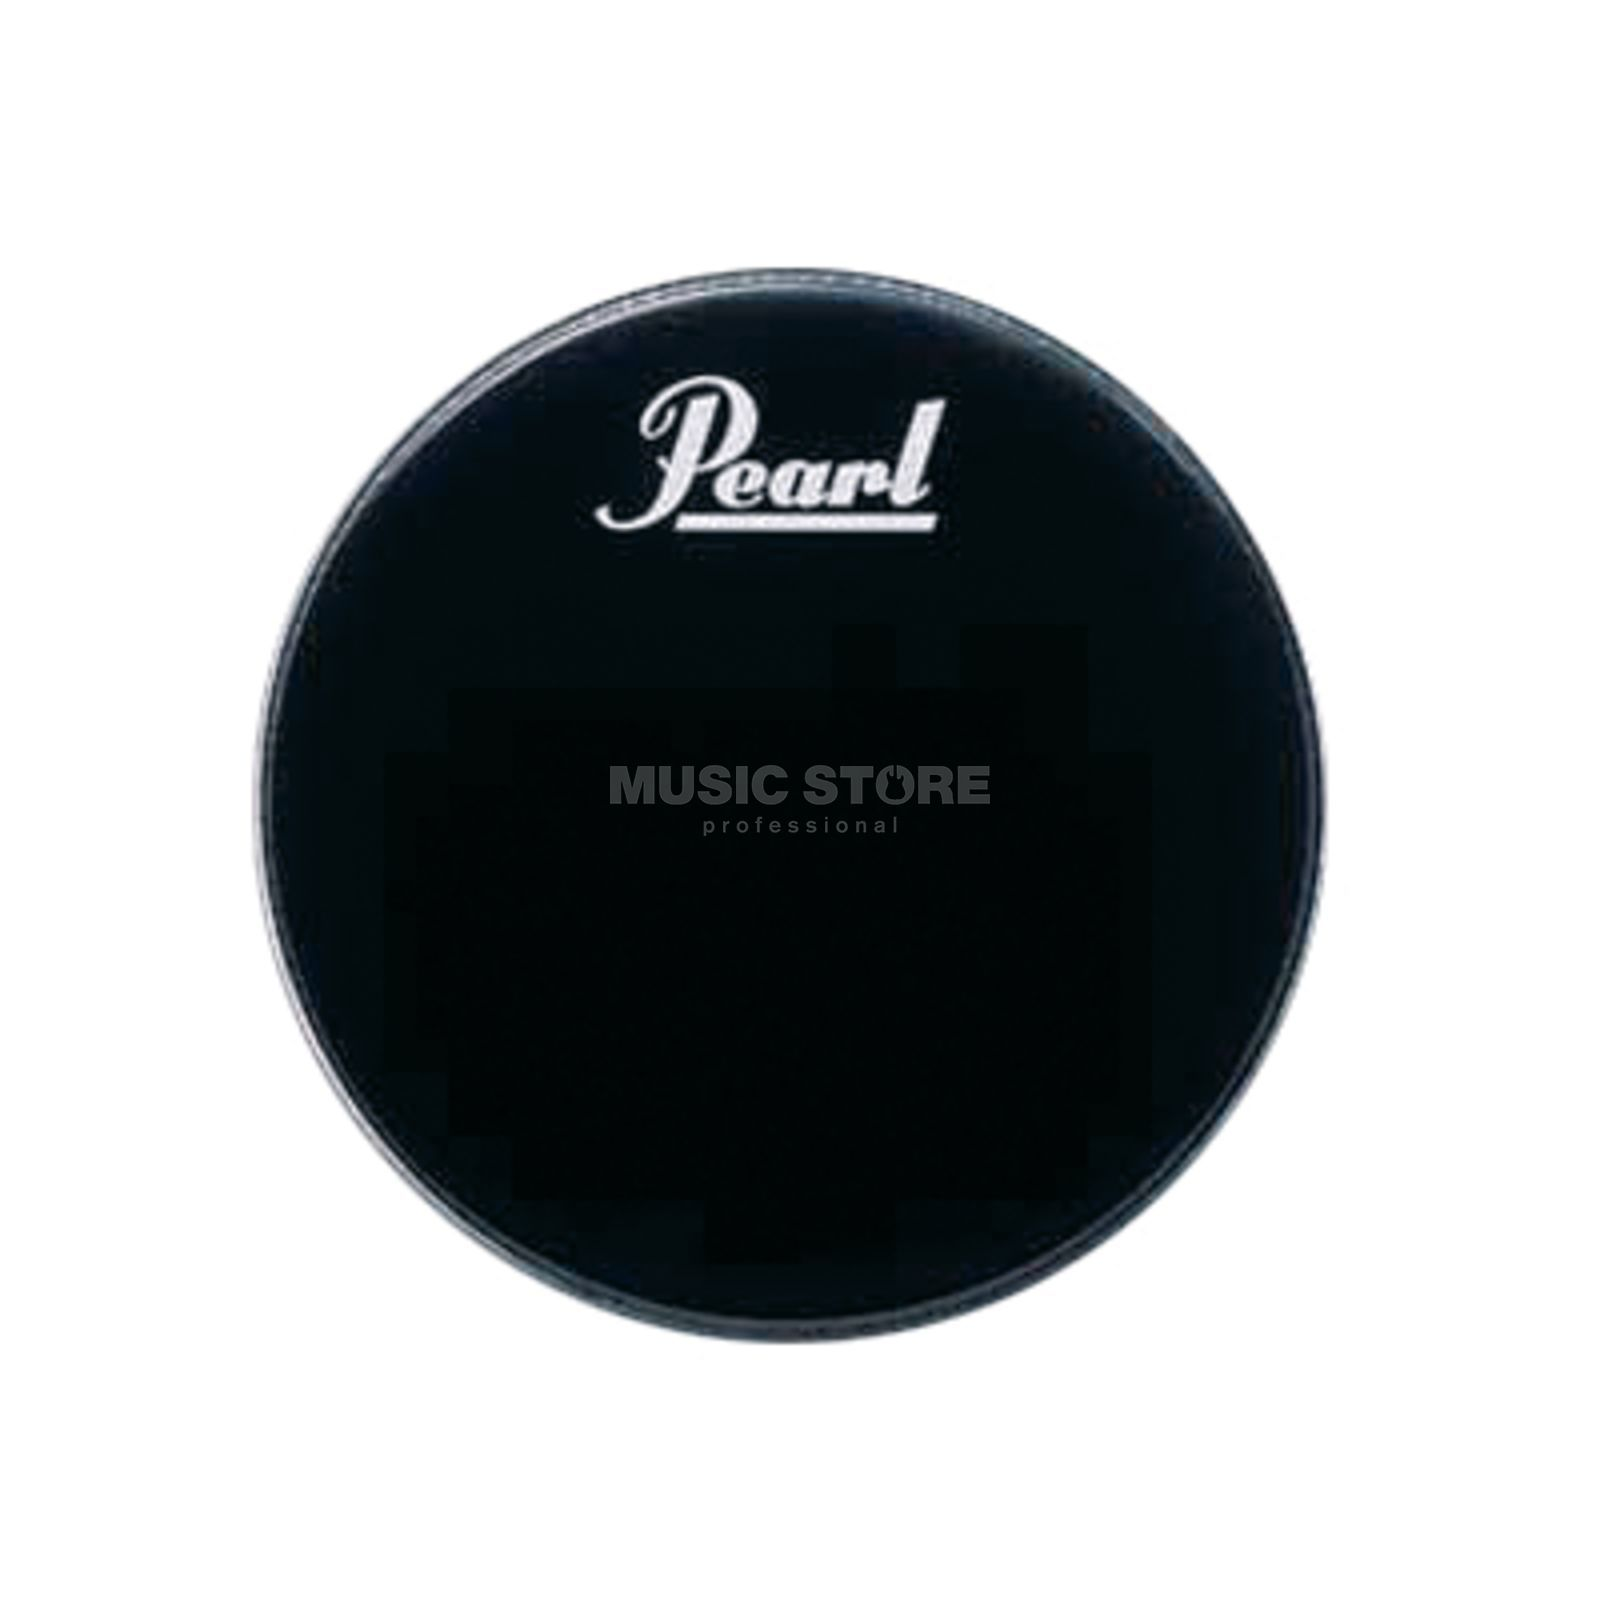 "Pearl Bass Drum Front Head 20"", black, w/logo Изображение товара"